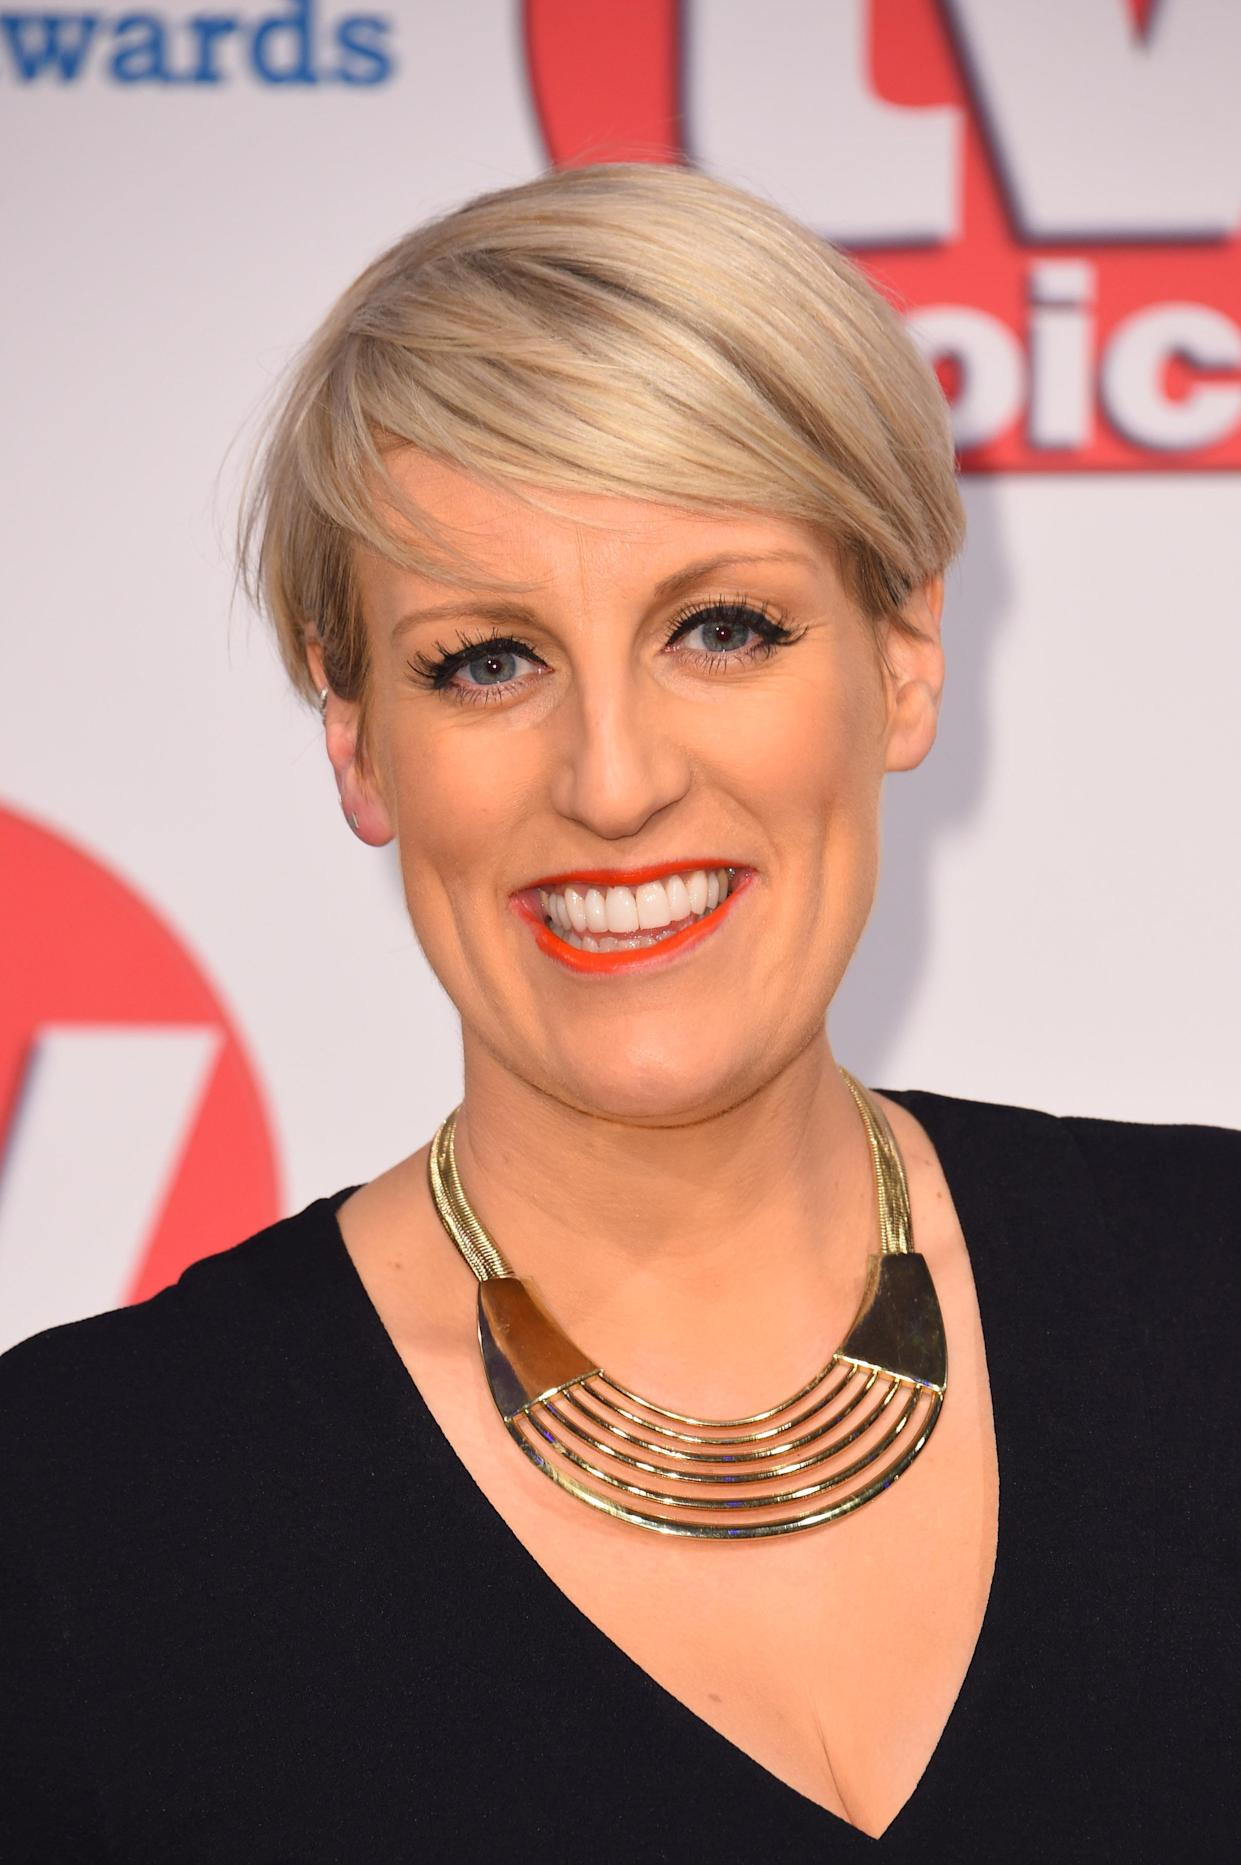 Steph McGovern attending the TV Choice Awards held at the Hilton Hotel, Park Lane, London.